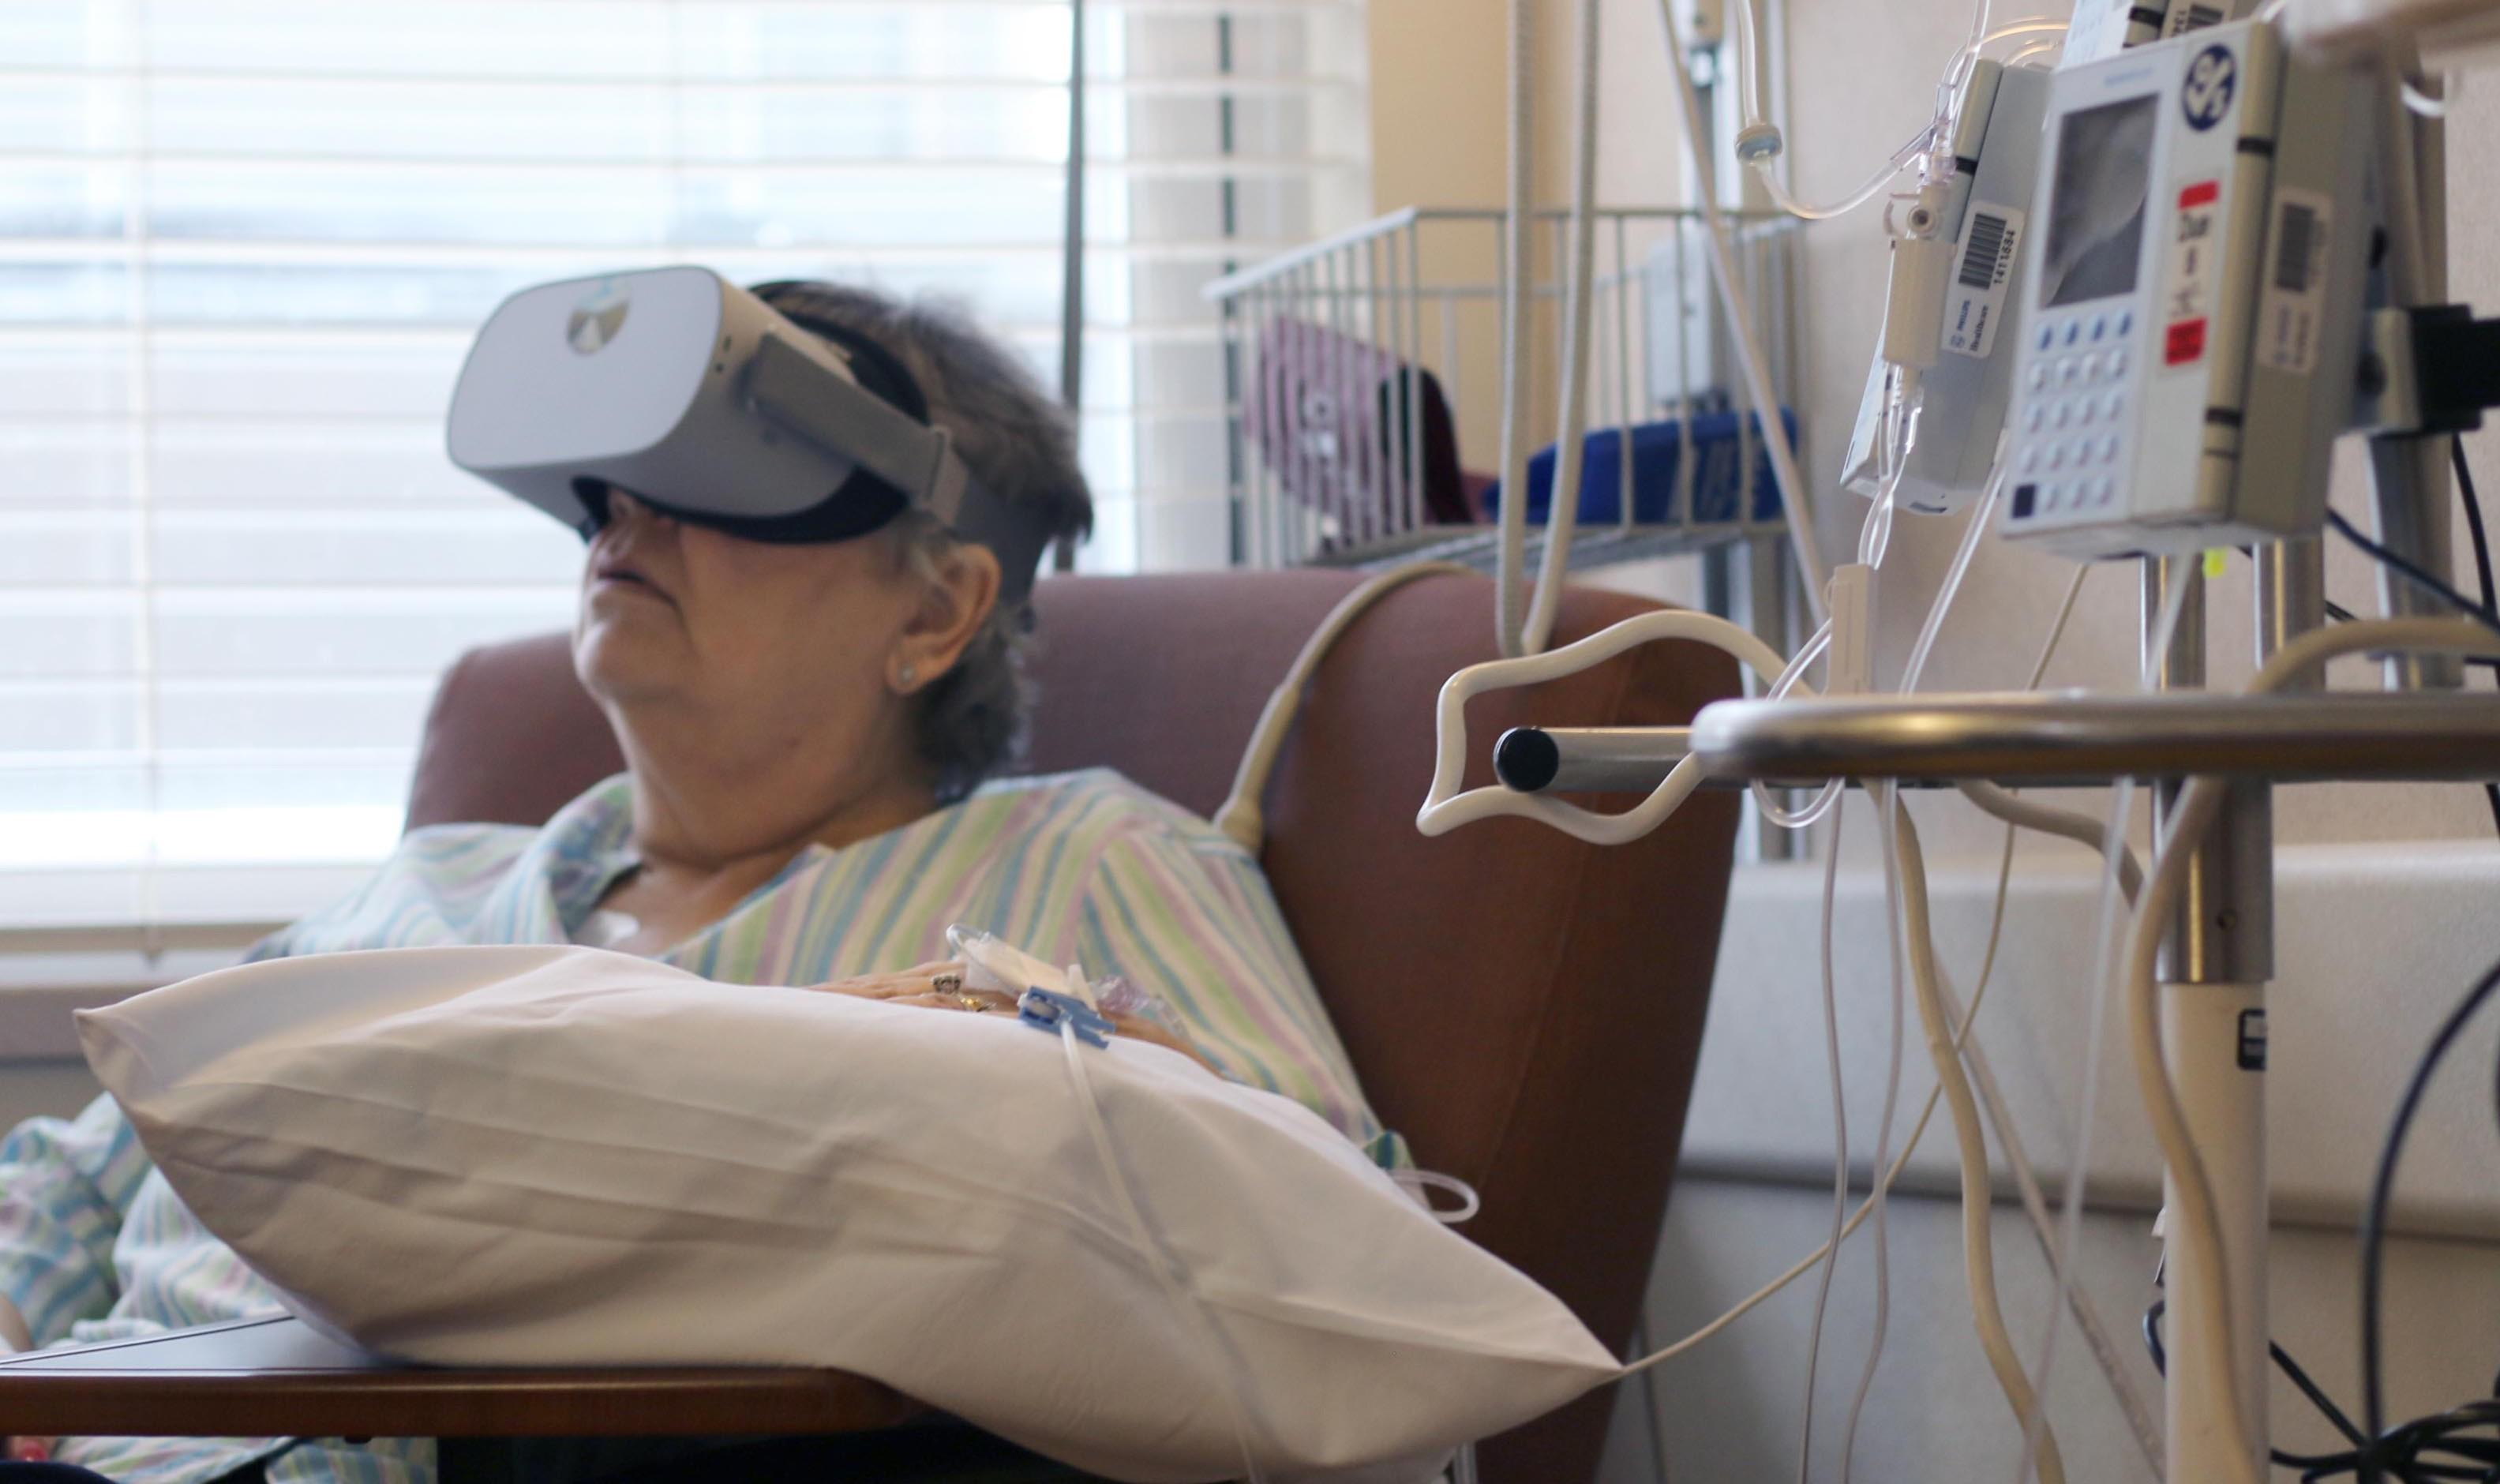 A patient receiving chemo treatments uses VR.